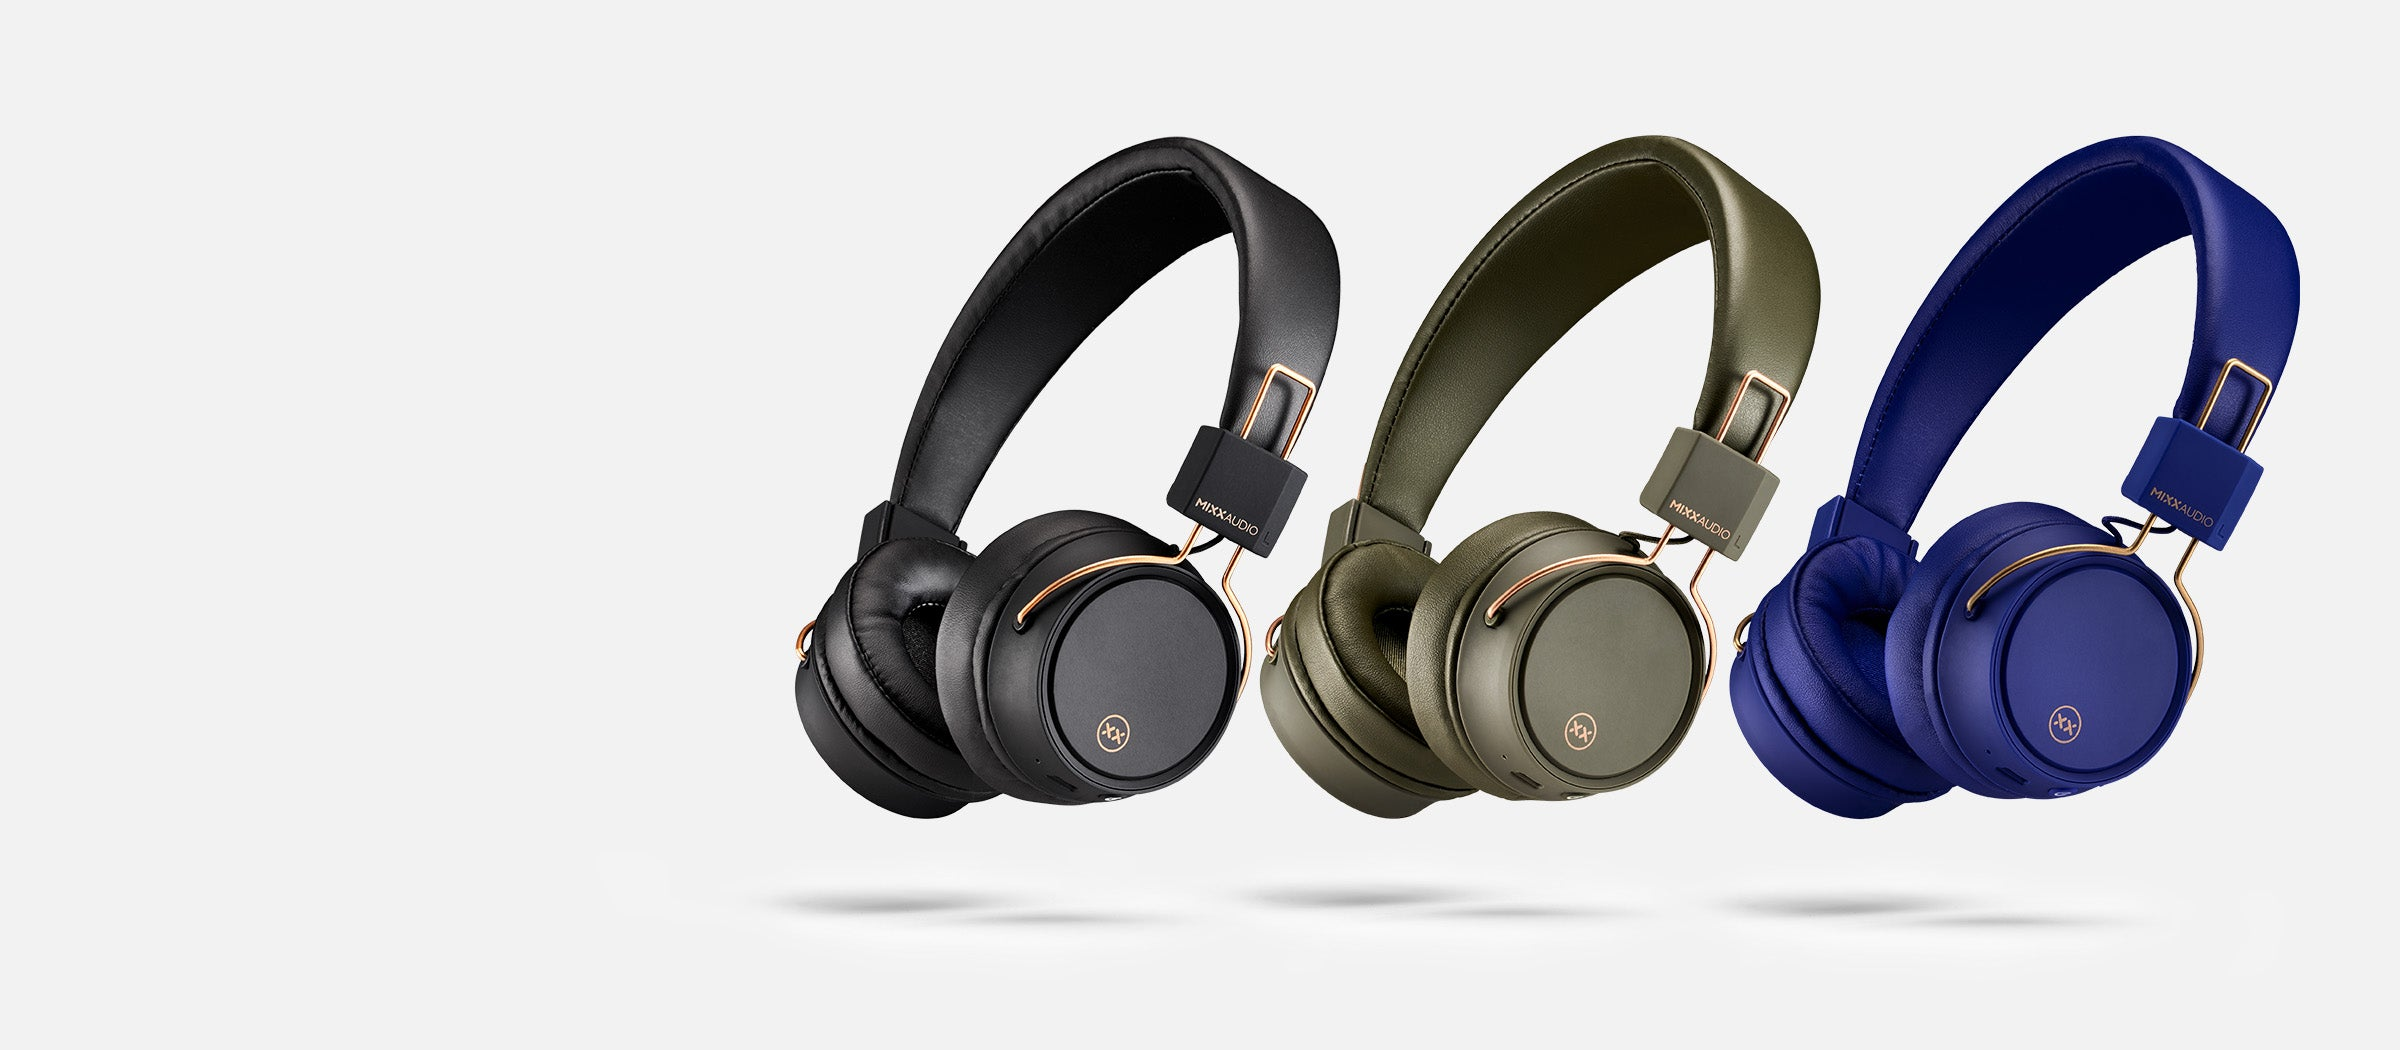 OX2 wireless headphones